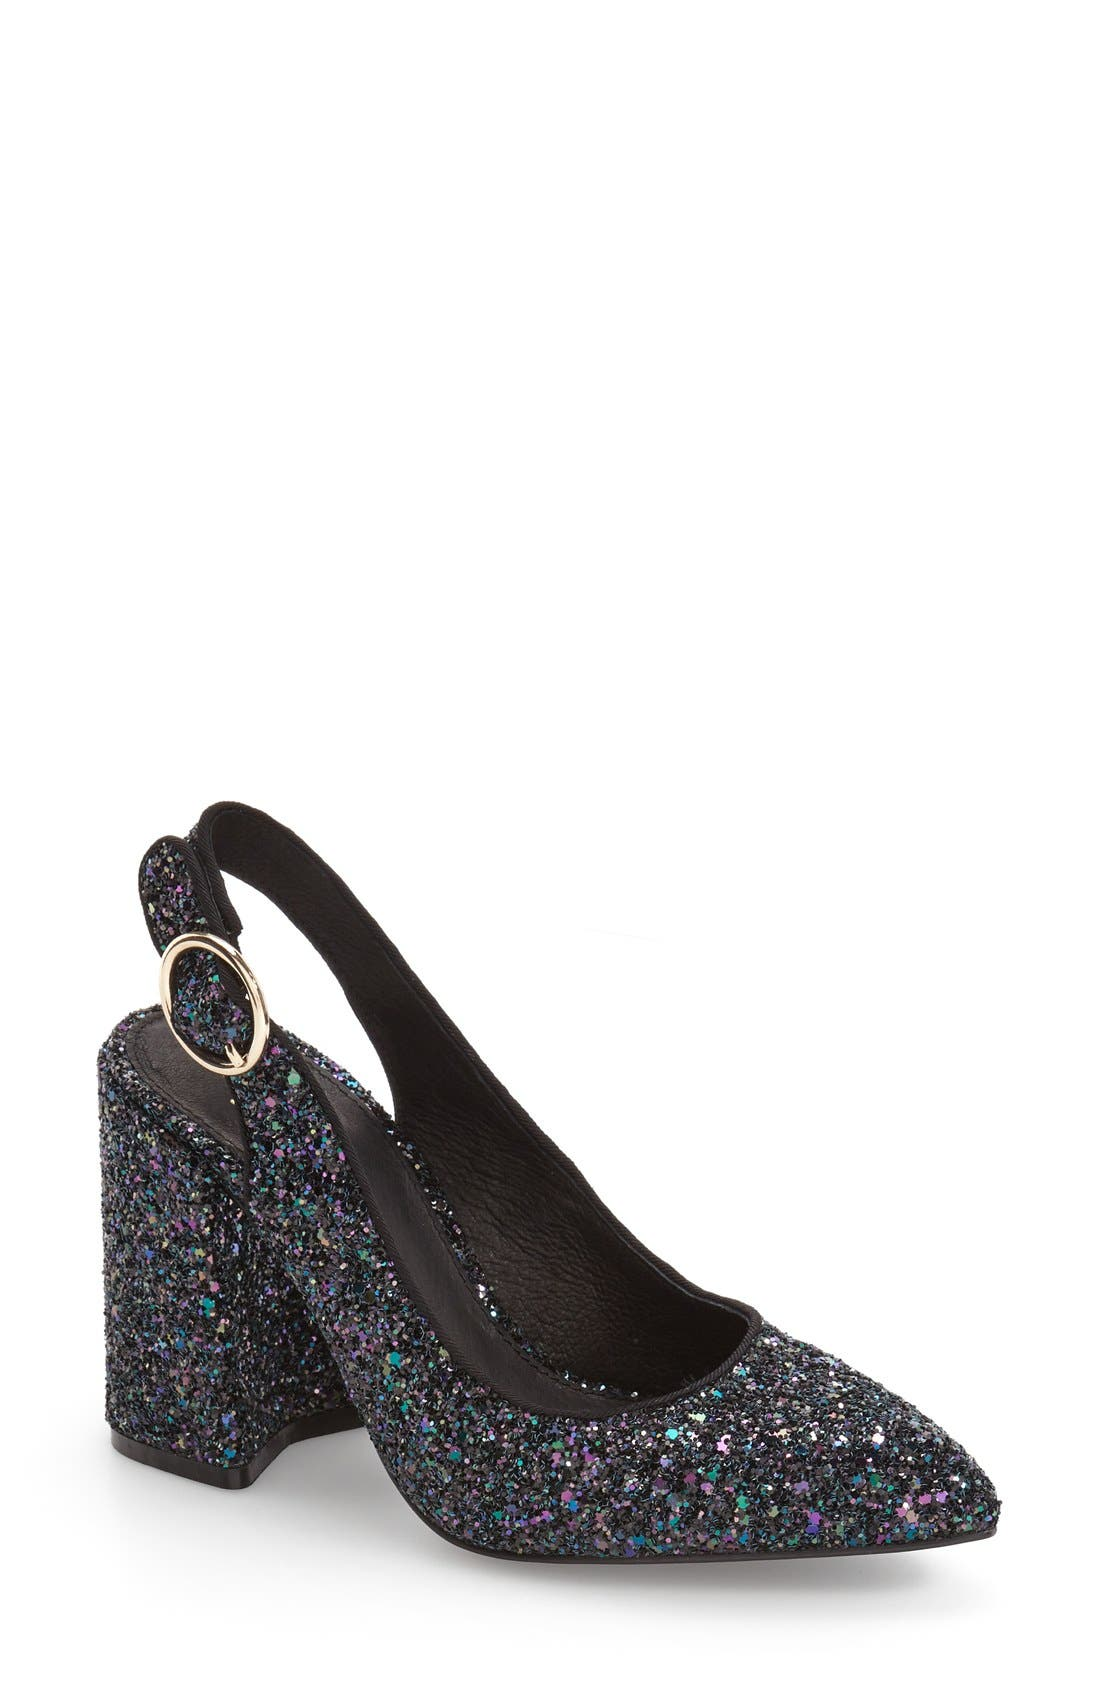 Shellys London 'Chester' Slingback Glitter Pump (Women)